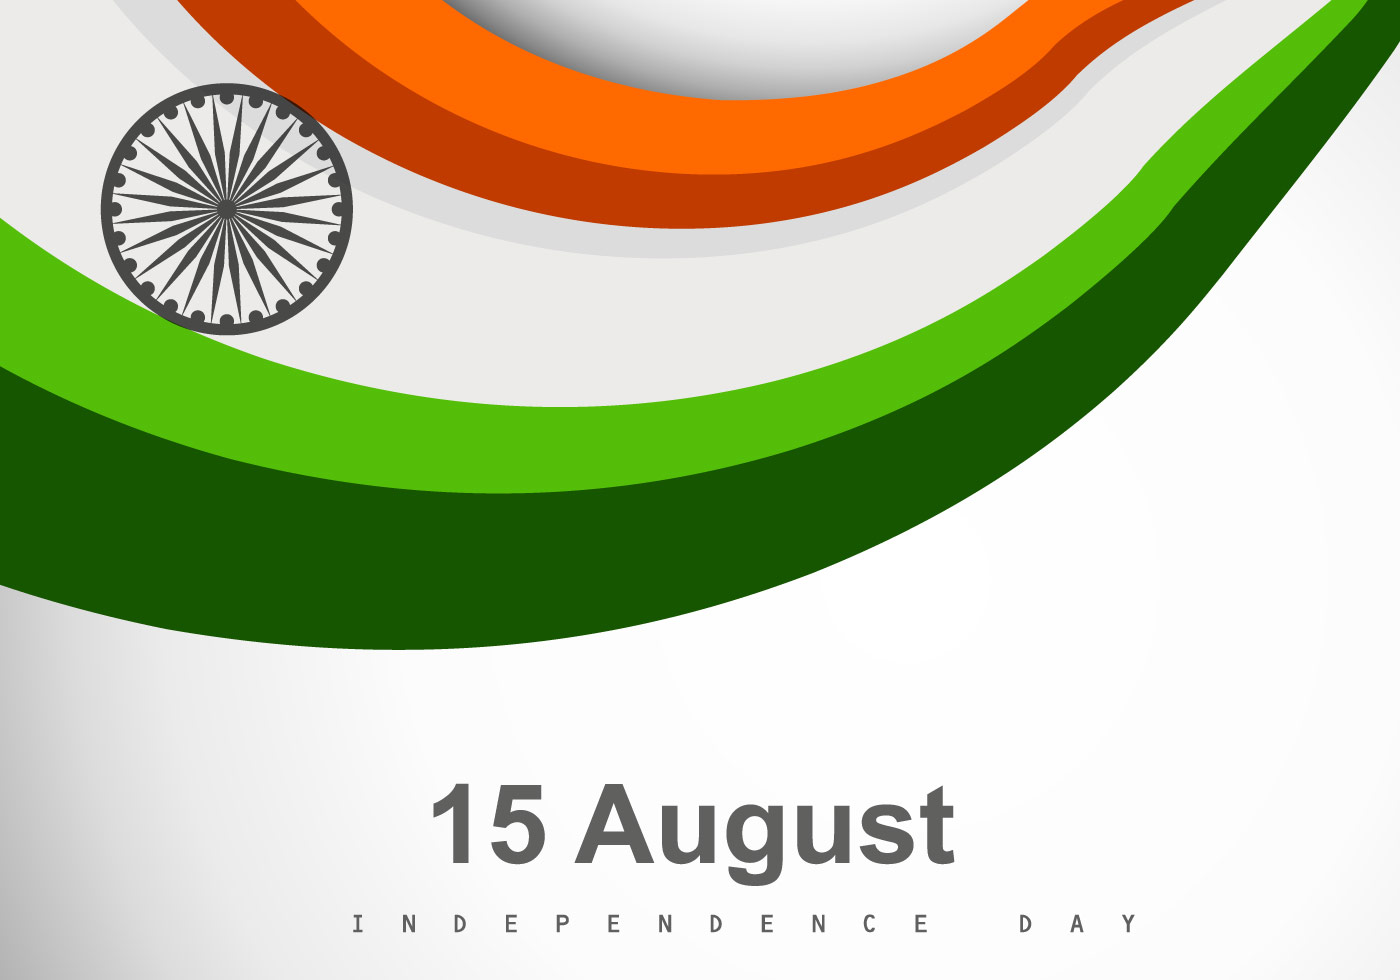 Tri Color Indian Flag - Download Free Vector Art, Stock Graphics ...